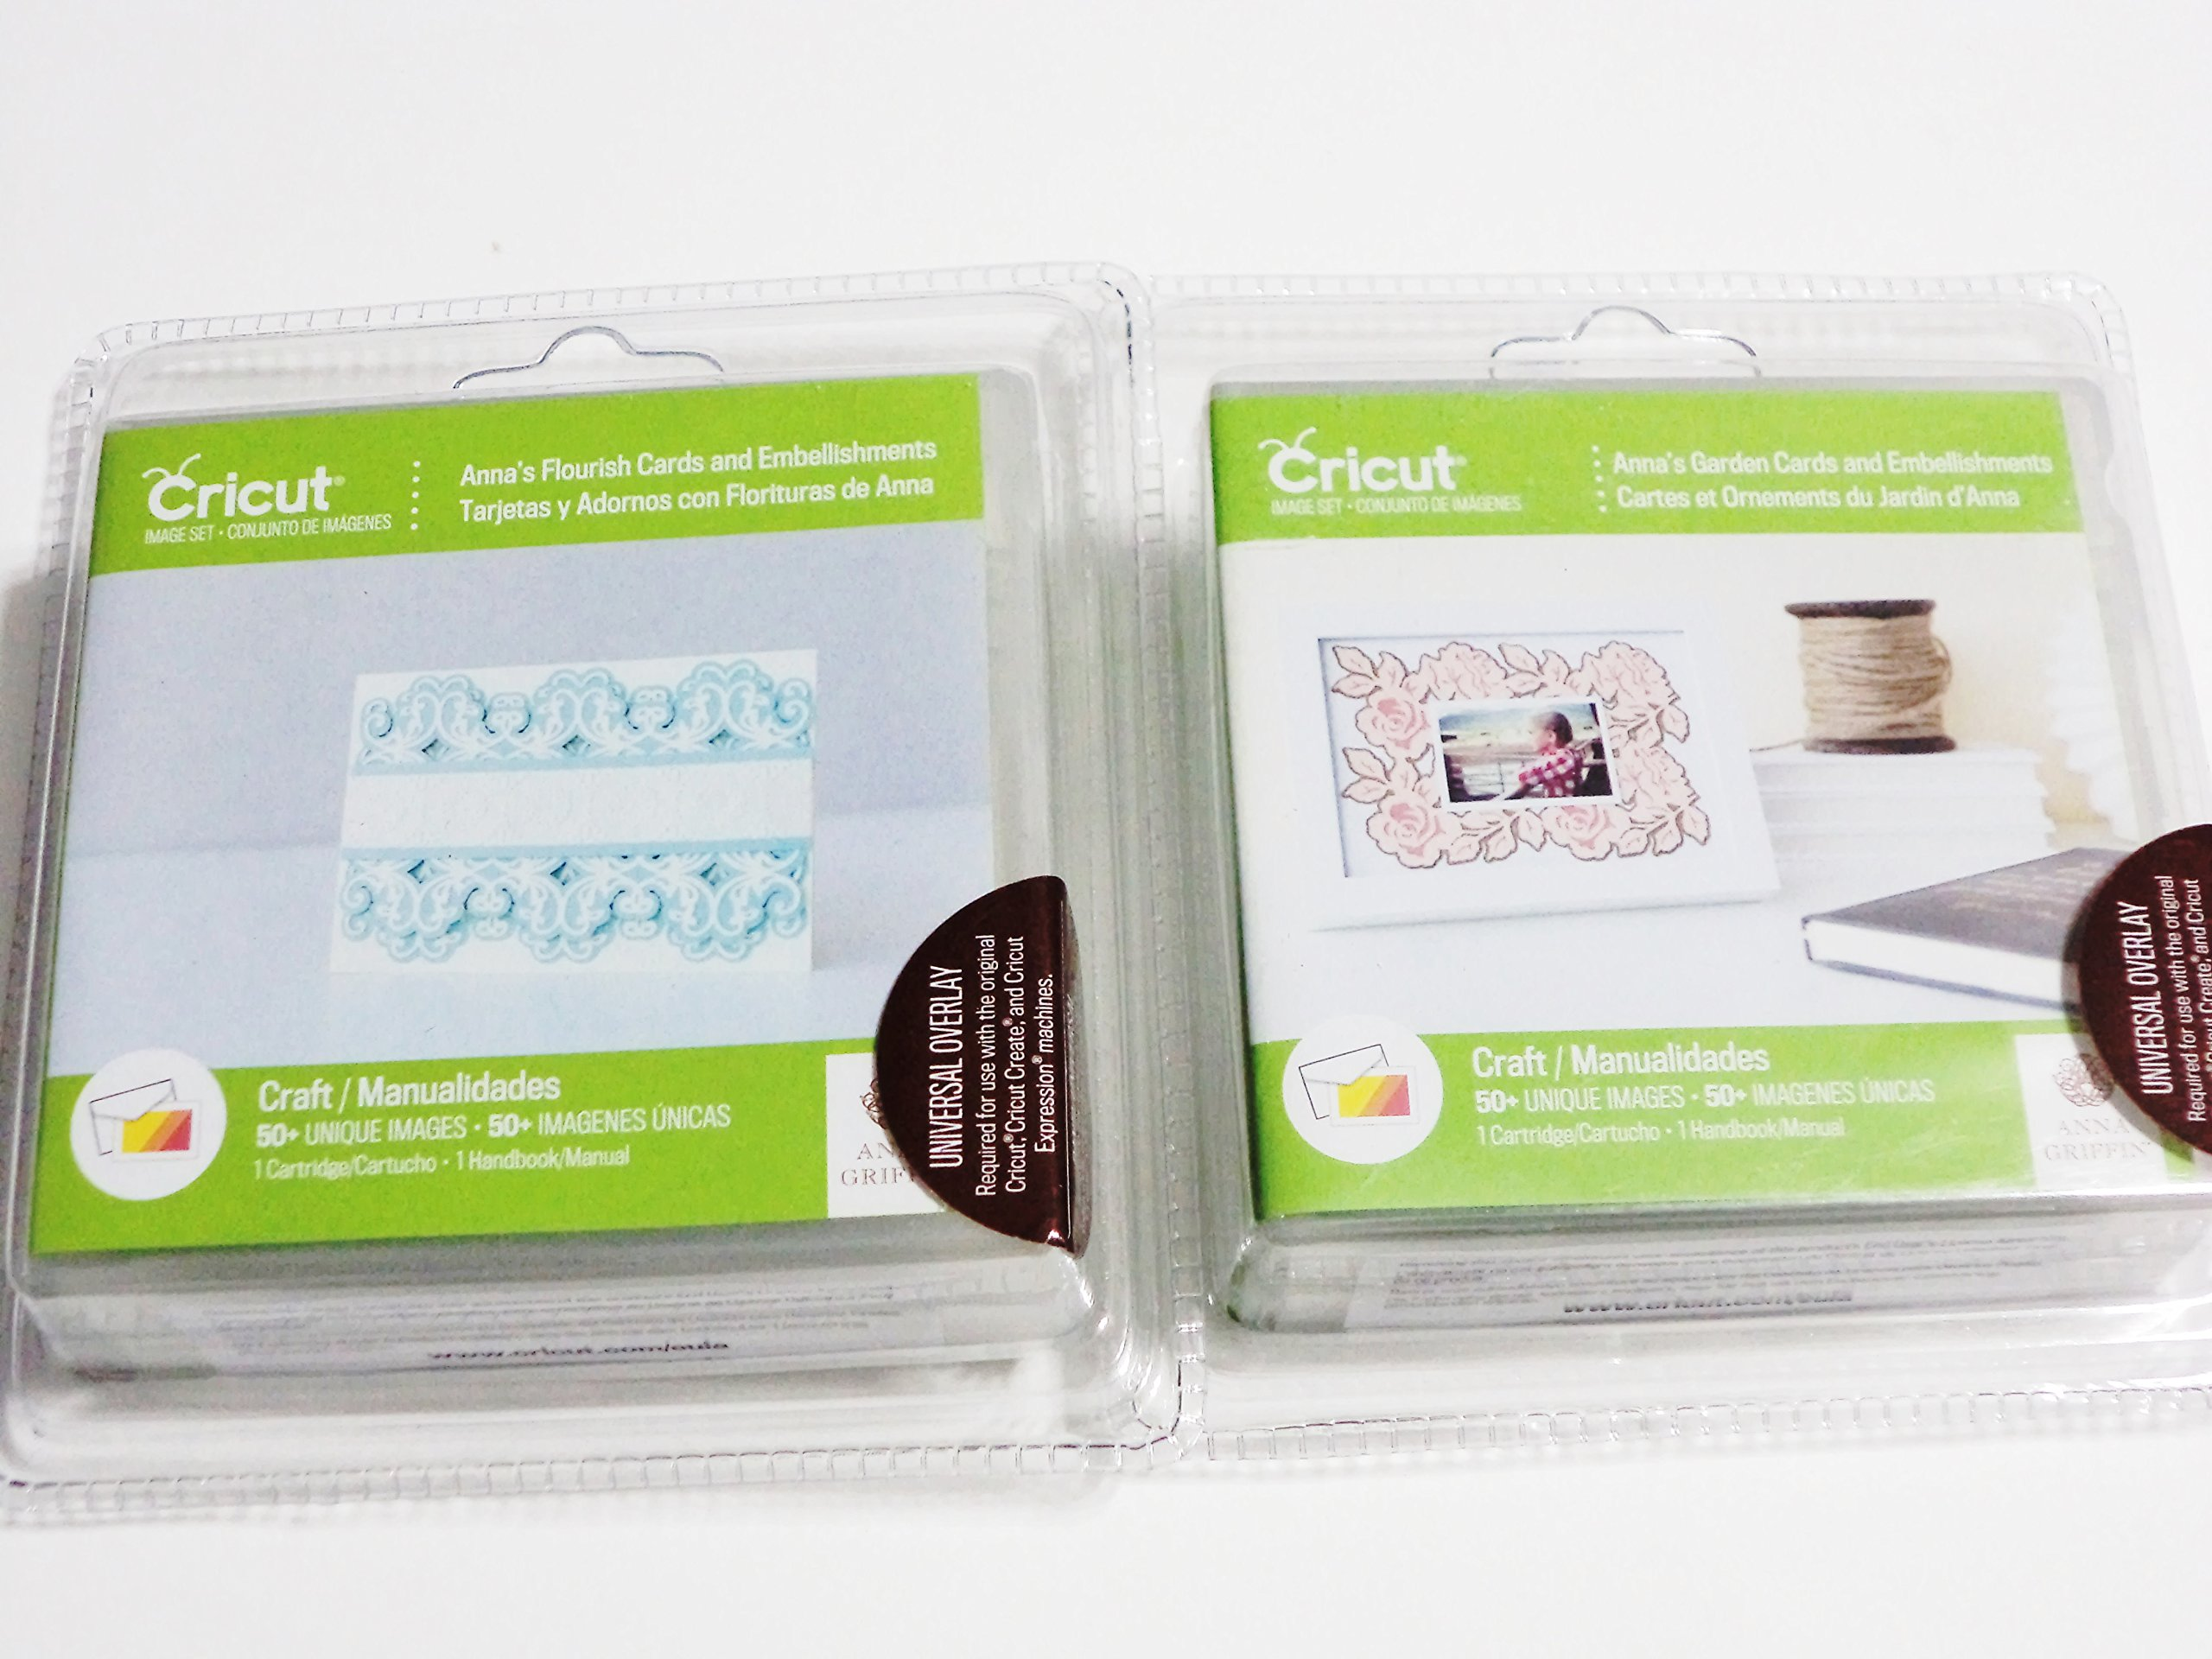 Cricut Anna's Flourish Cards and Embellishments + Anna's Garden Cards and Embellishments 2 Cartridge Paper Scrapbook Craft Bundle